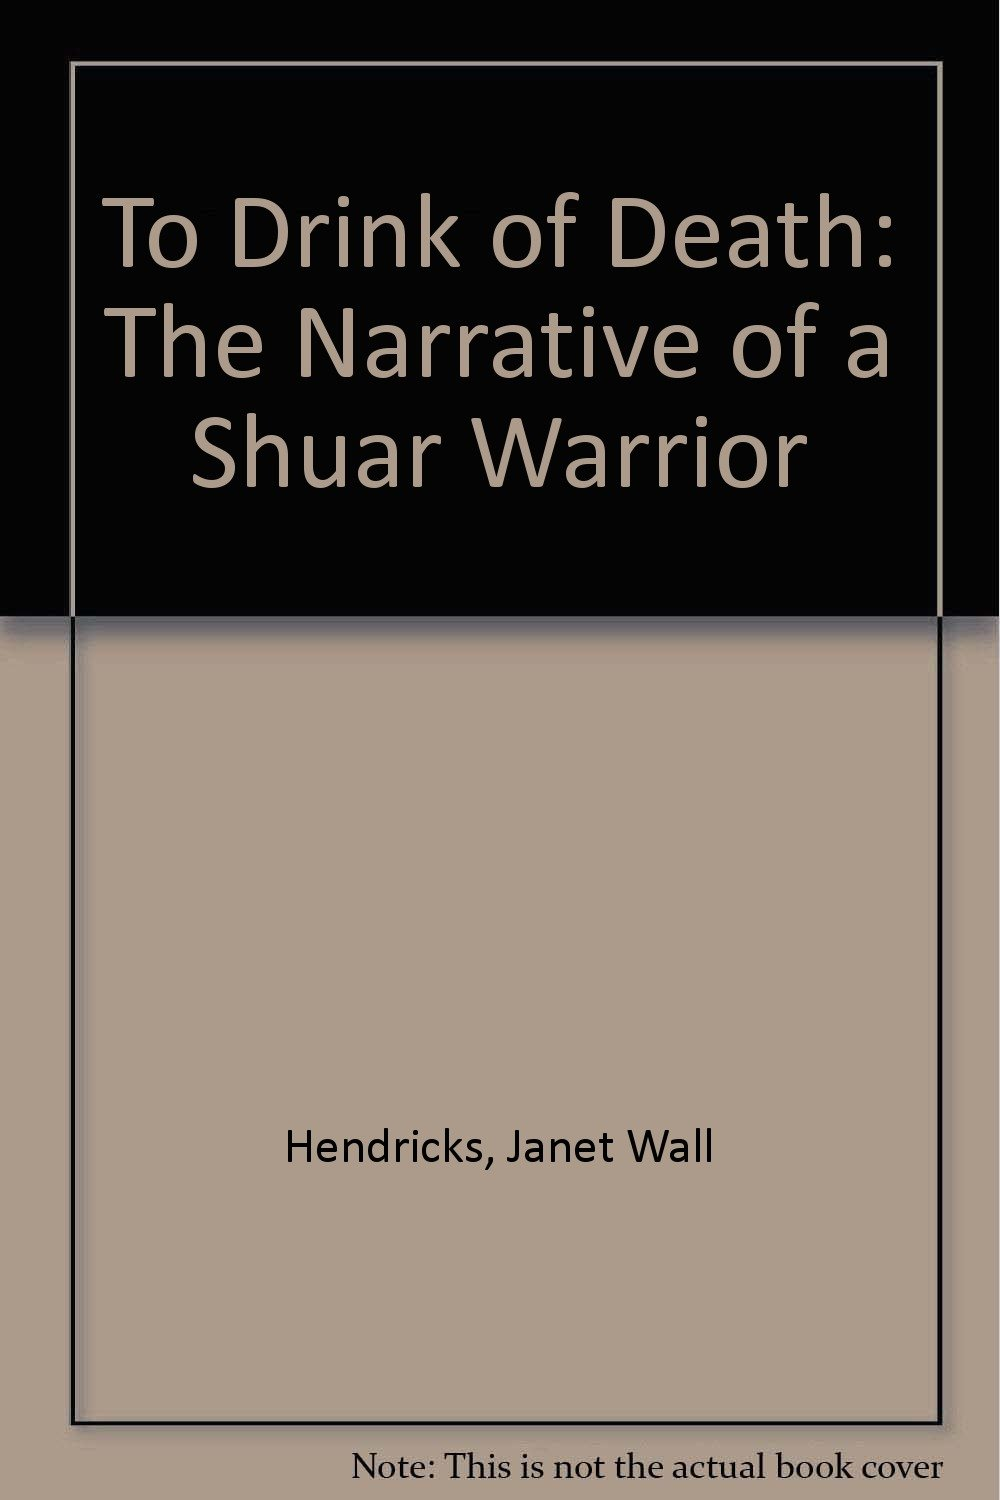 To Drink of Death: The Narrative of a Shuar Warrior